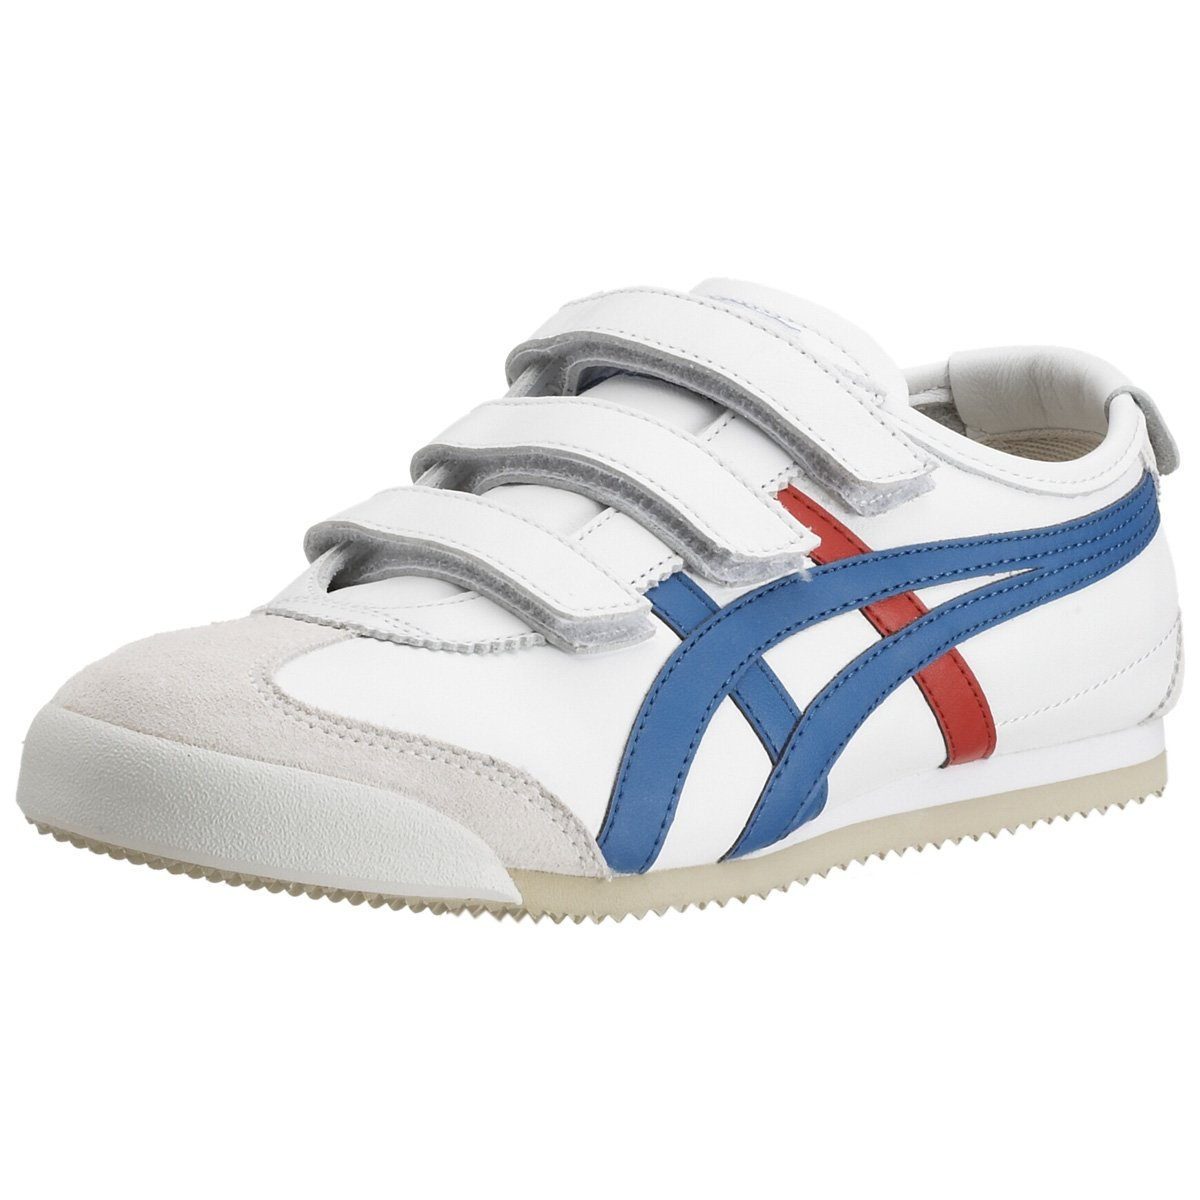 low priced a45d7 de1f0 ASICS Onitsuka Tiger Mexico 66 Baja Trainer White/Blue White ...